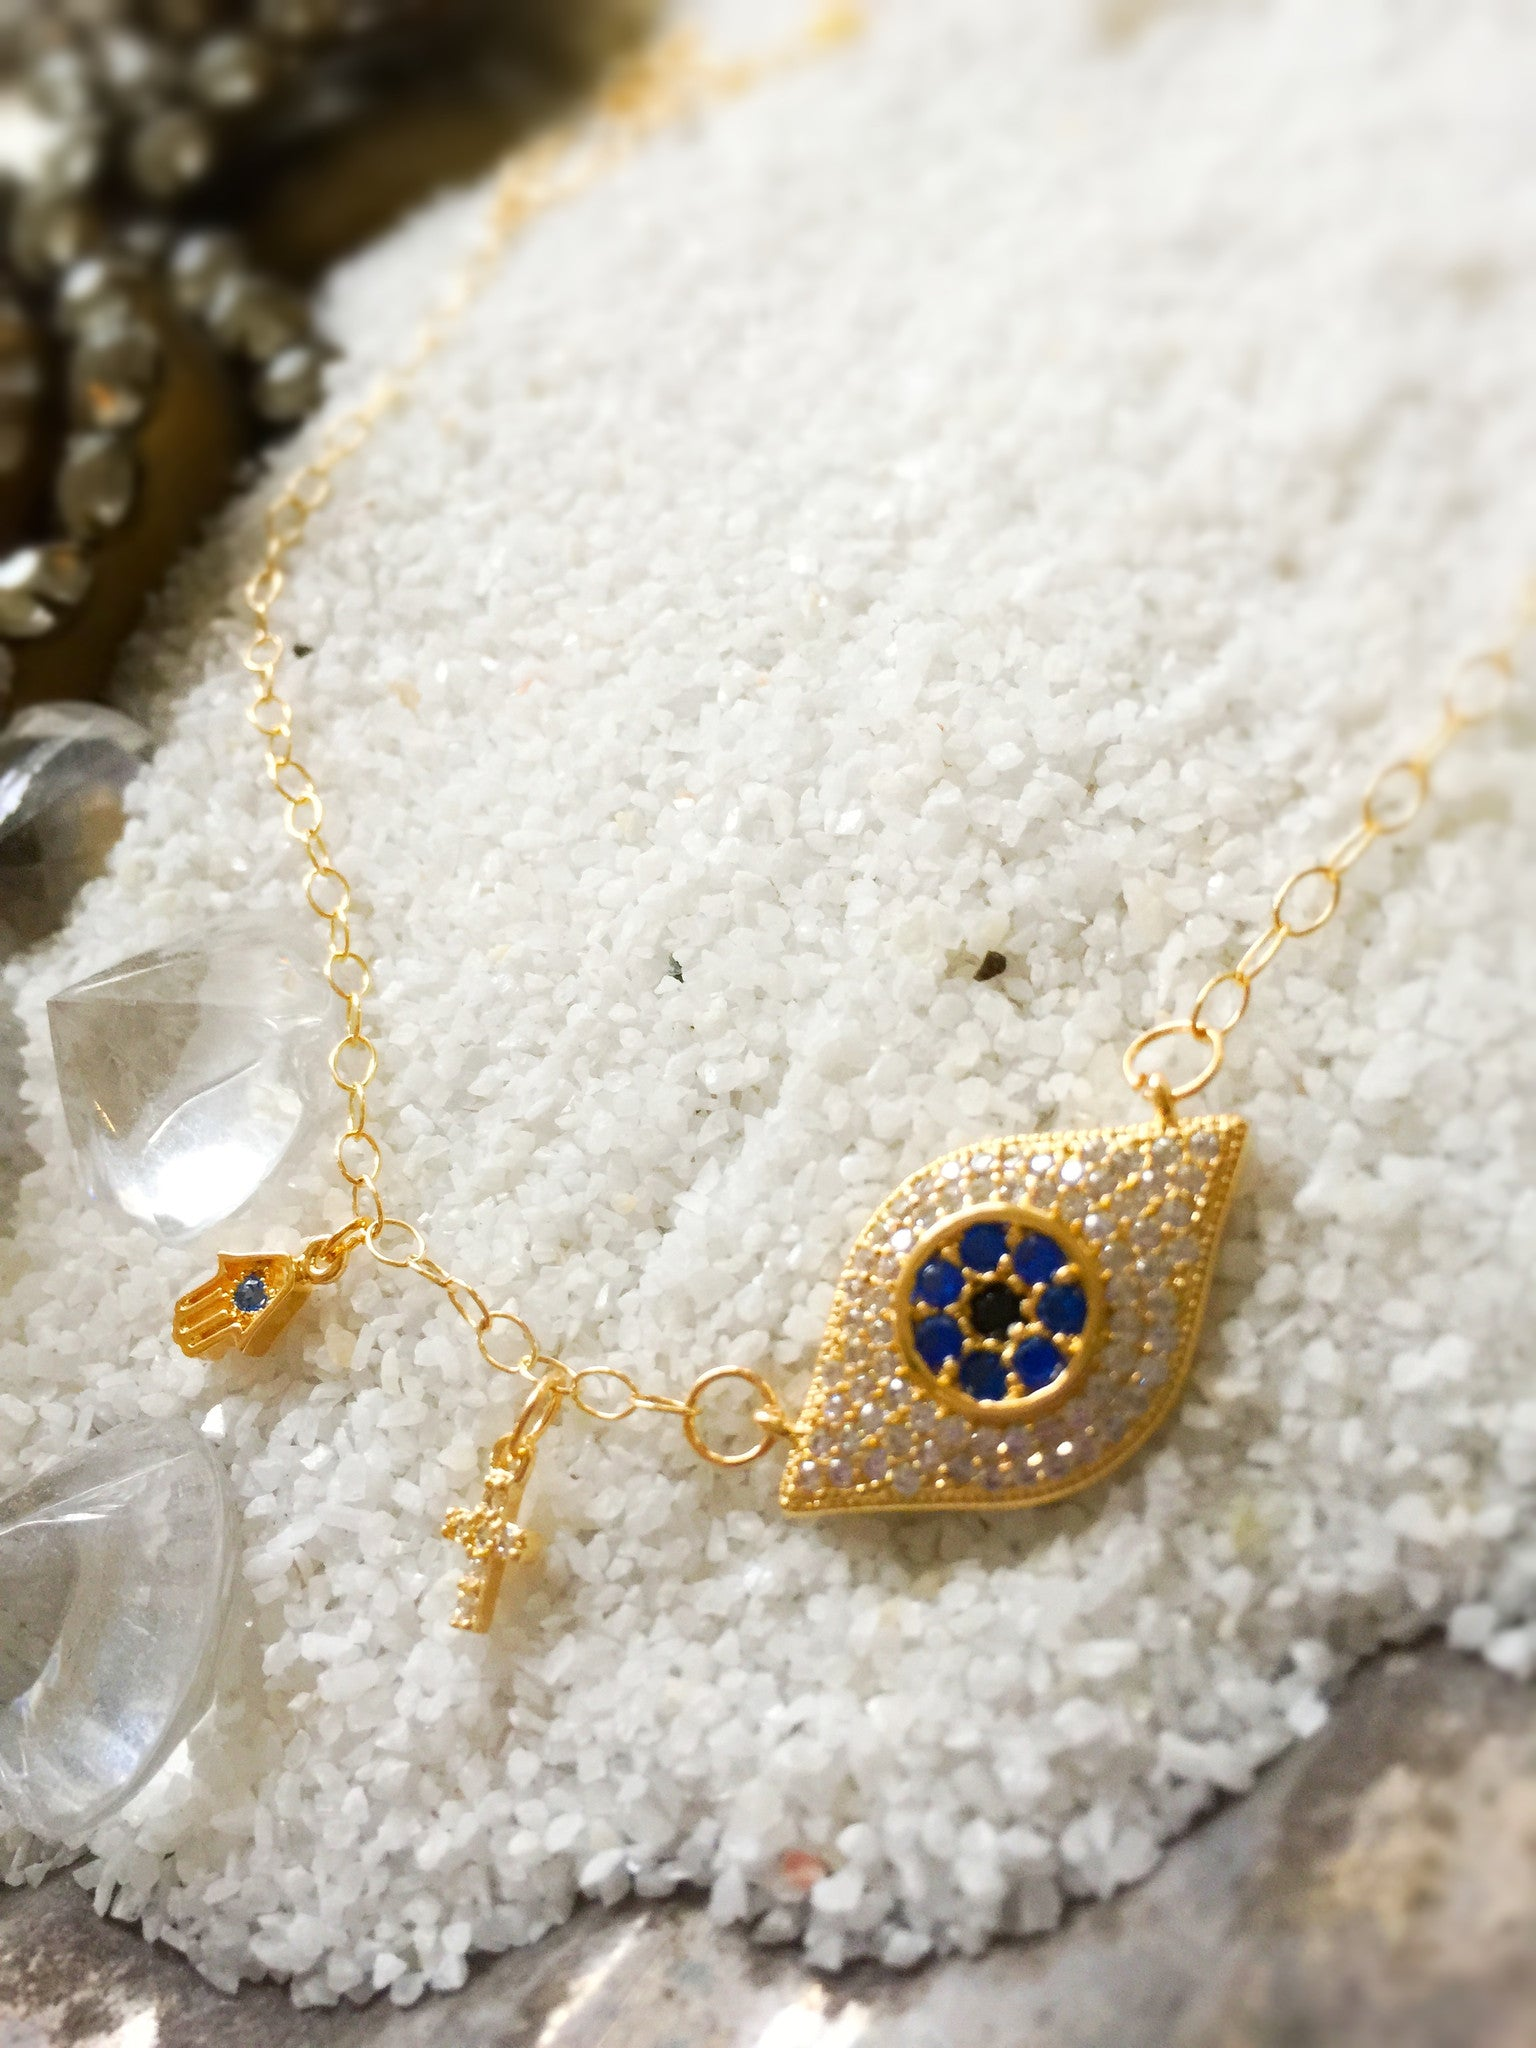 St. Shine Evil Eye